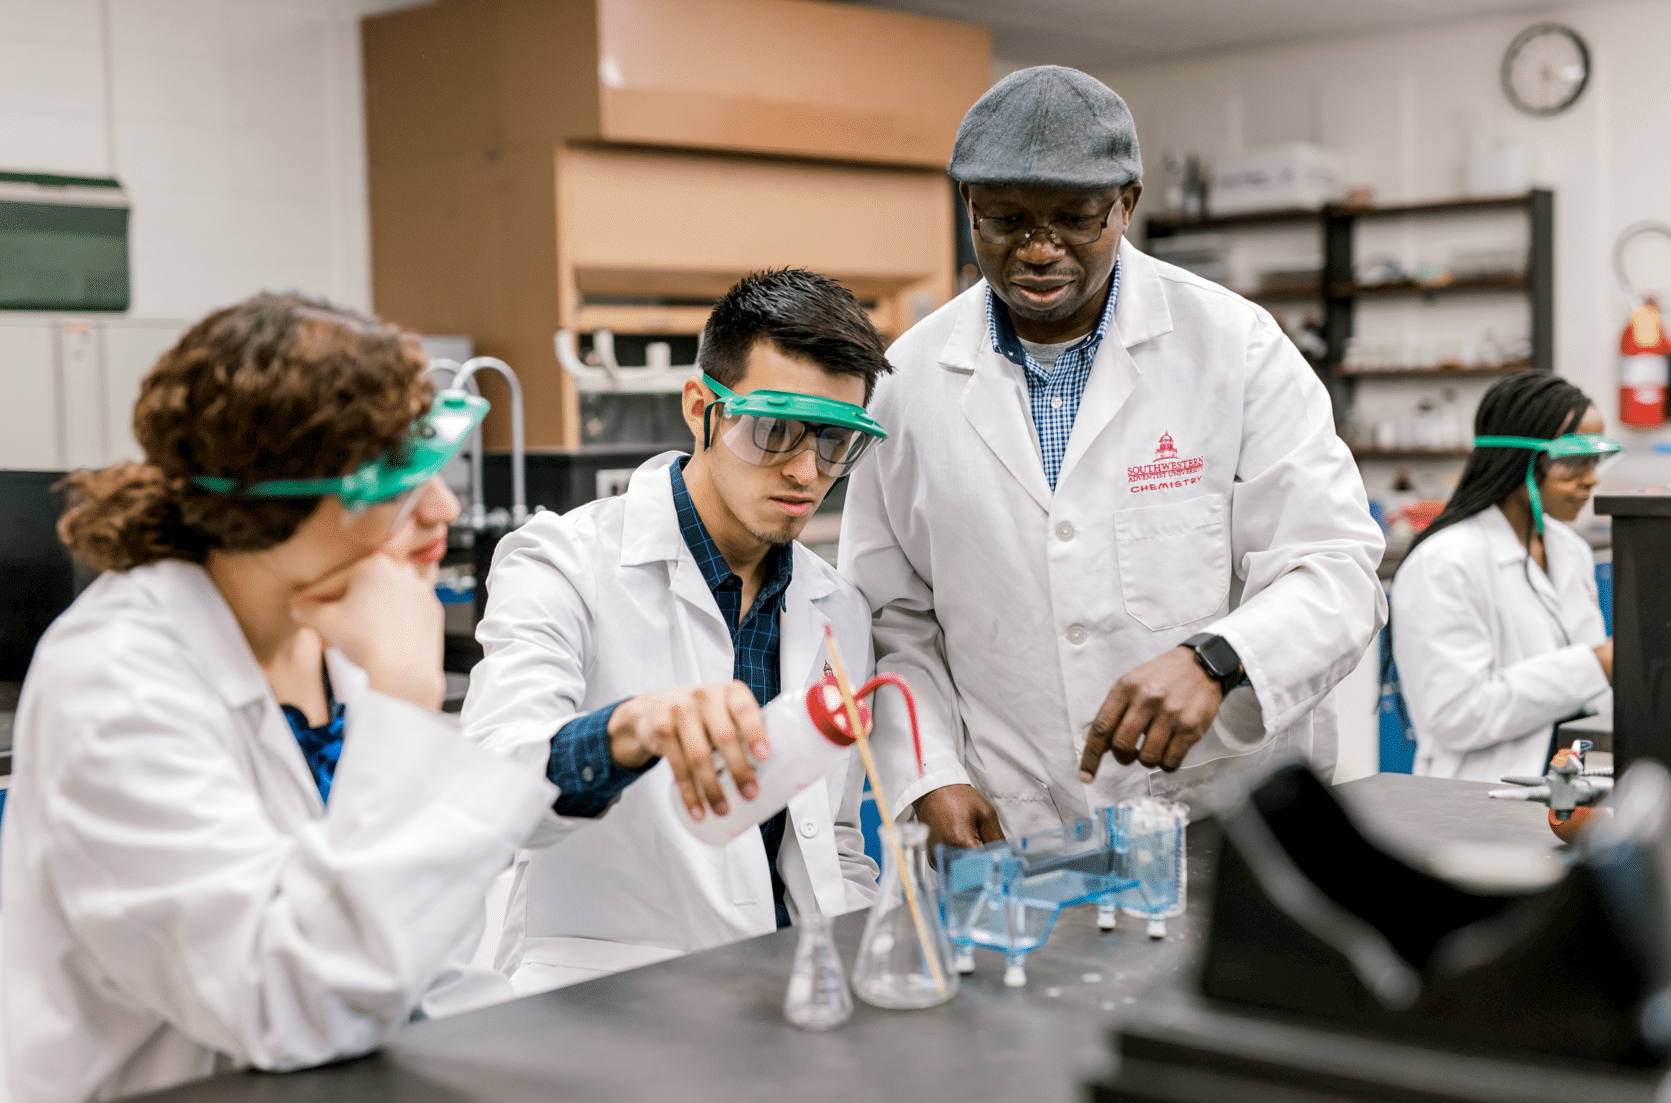 Group of students with lab coats in lab analyzing class materials